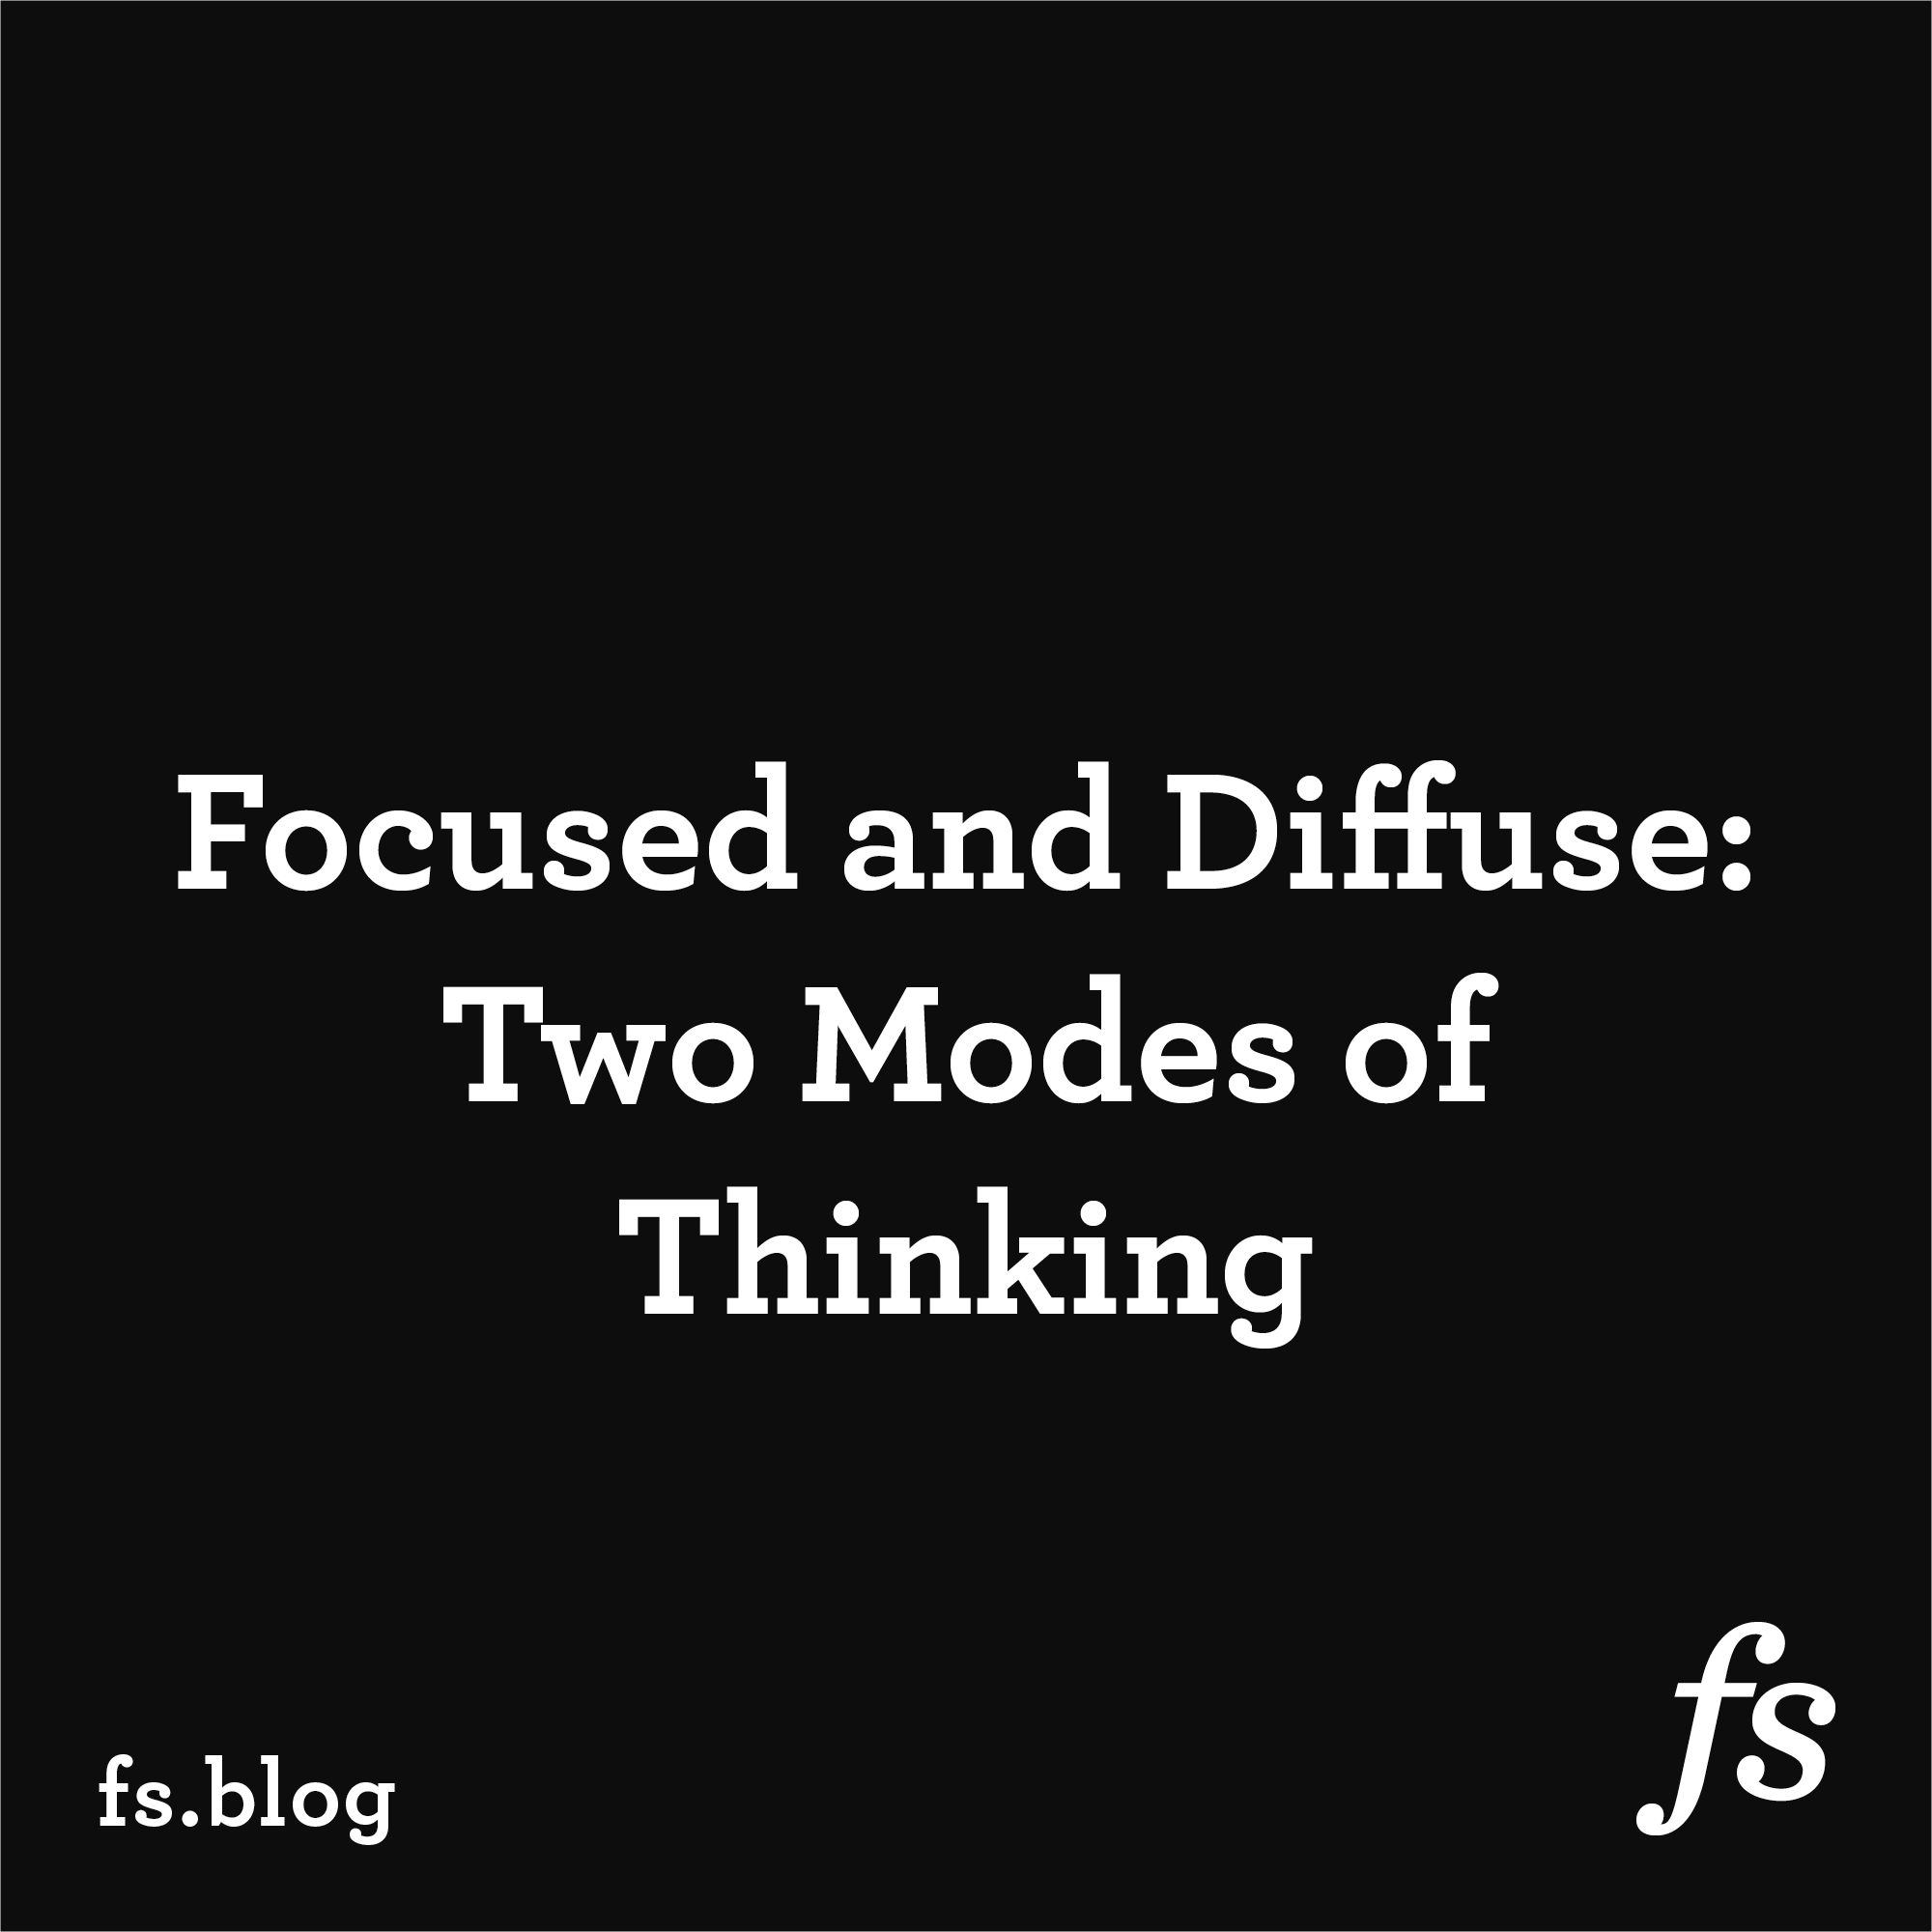 Focused and Diffuse: Two Modes of Thinking